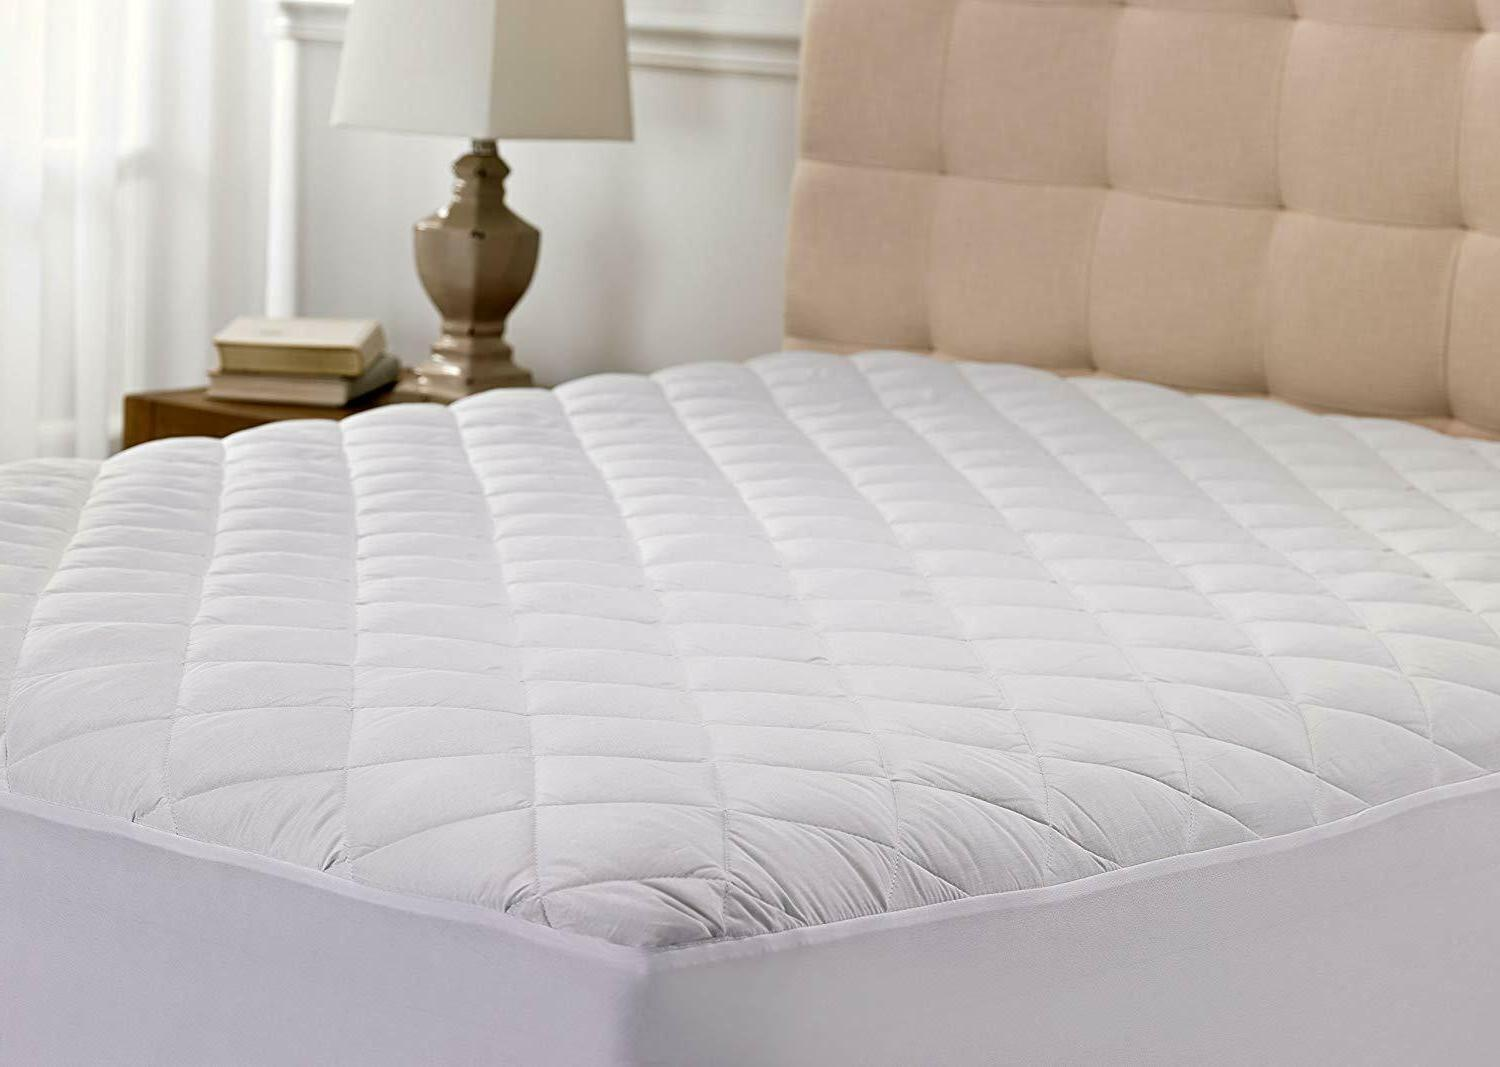 Mattress Pad Hypoallergenic Quilted Stretch-to-Fit 10 Year W